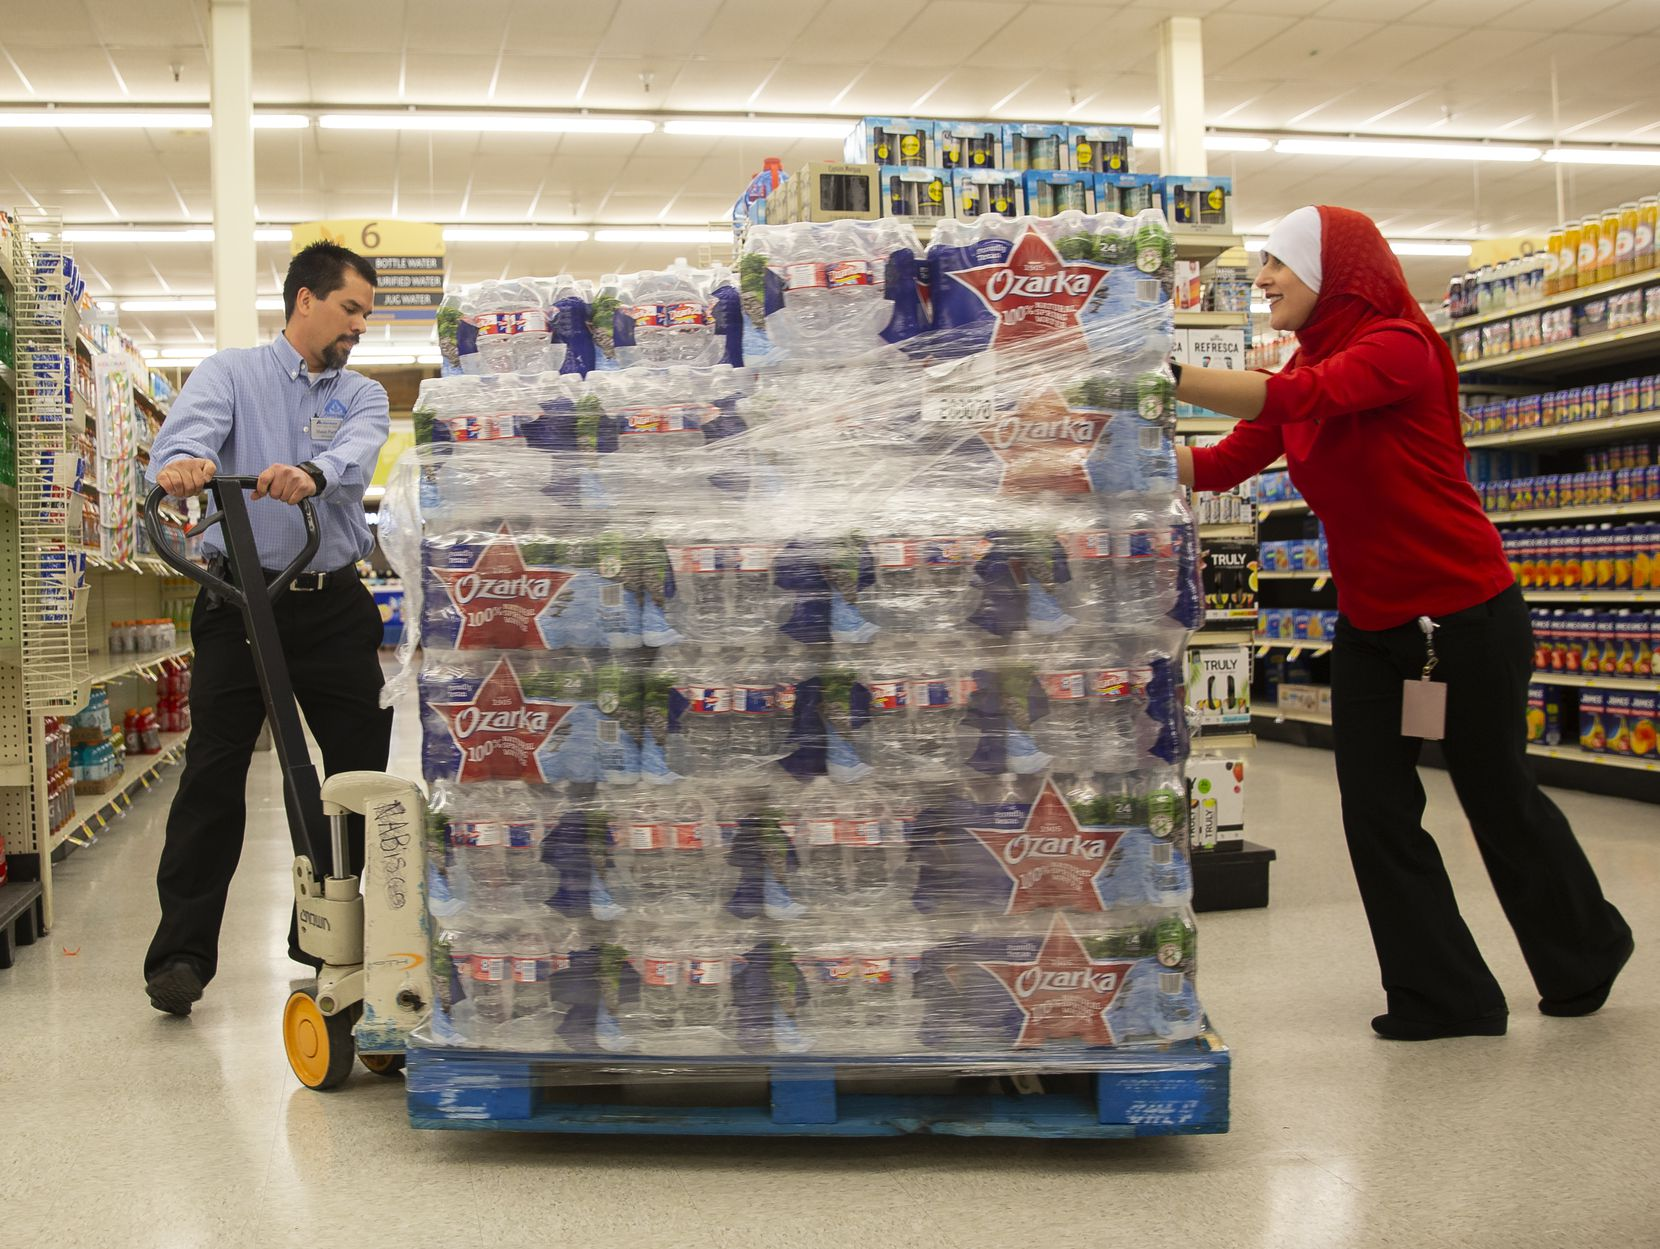 Maha Eldabaja, center store operations specialist, (right) helps Shaun Paeth, head of general merchandise, push a water pallet at Albertson's on March 20, 2020, in Colleyville. (Juan Figueroa/The Dallas Morning News)